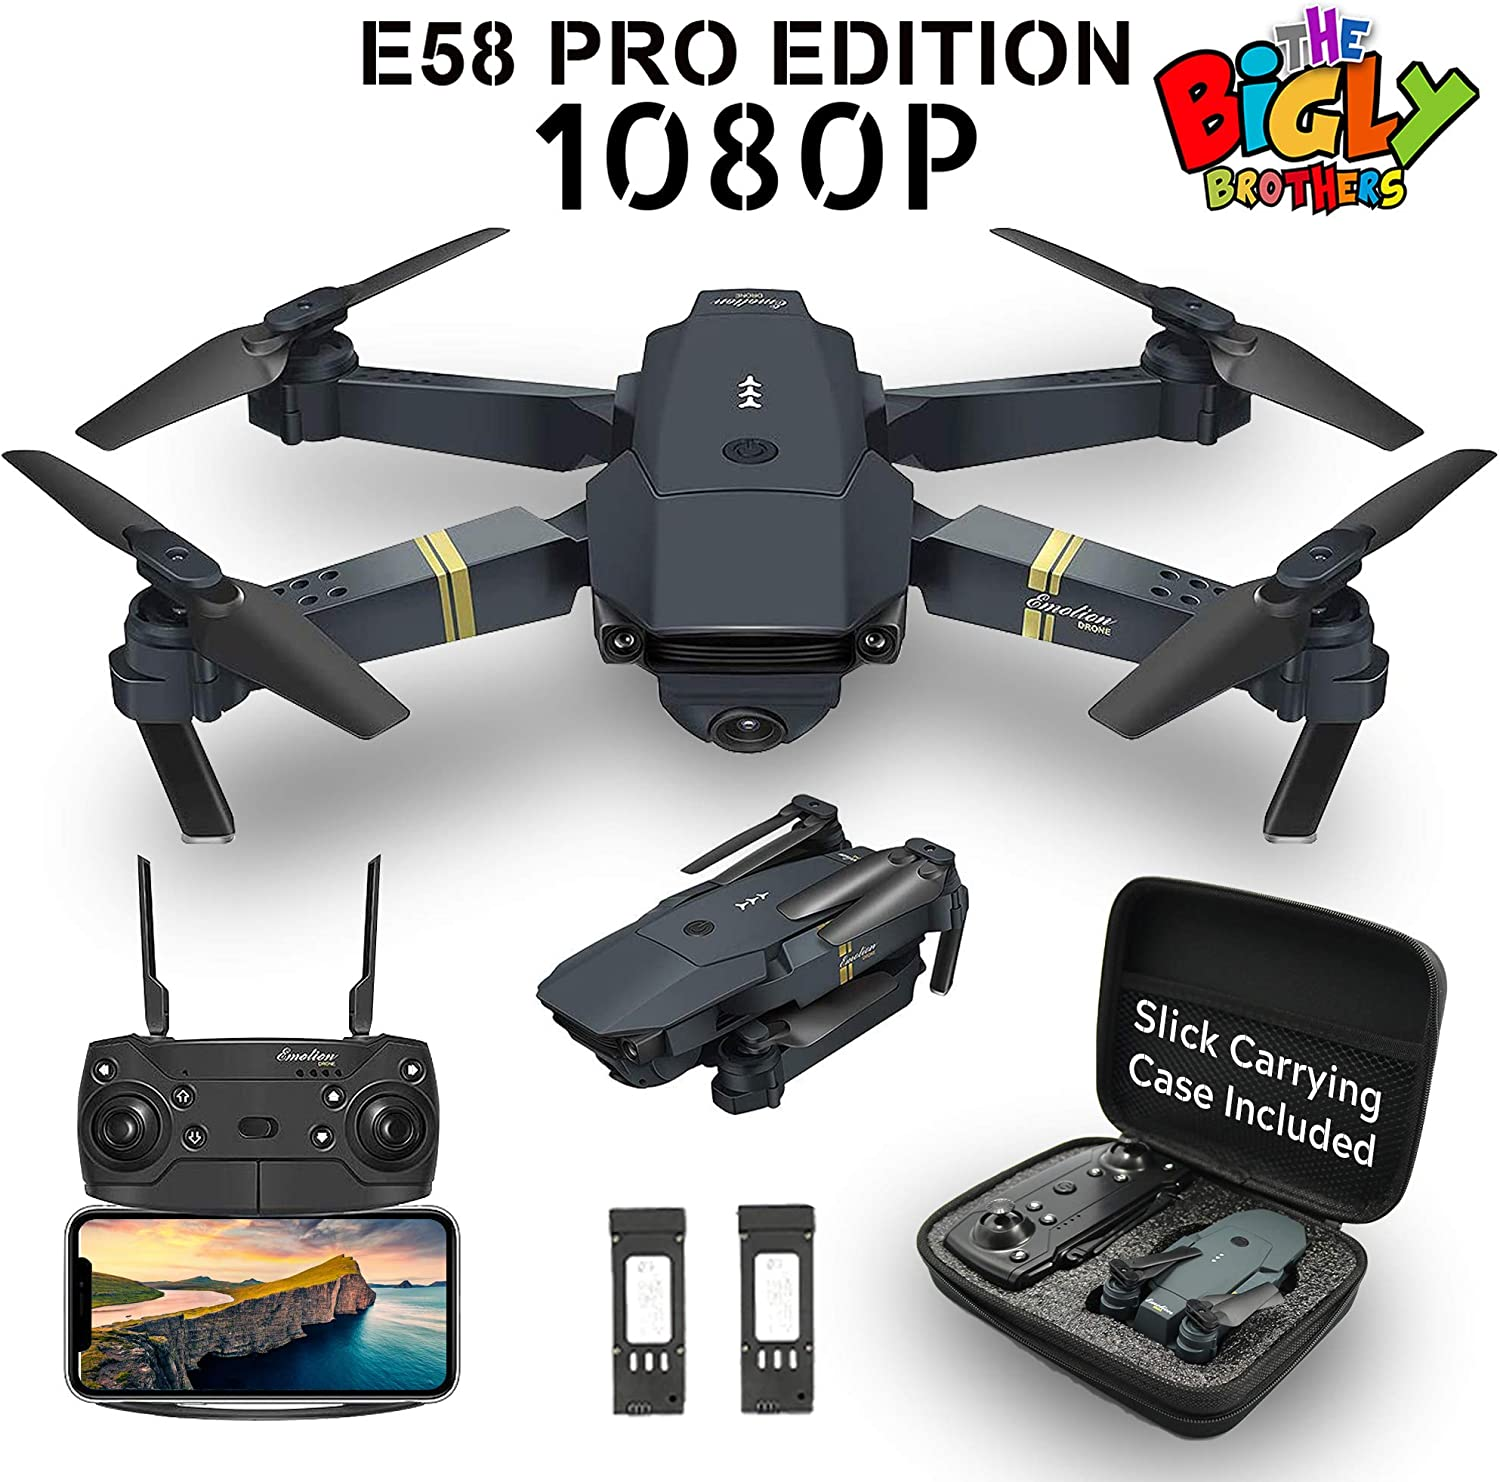 The Bigly Brothers E58 PRO Edition 1080P Drone with Camera 120 Wide Angle, Gesture Control, Altitude Hold, 1 Key Takeoff Landing, 1 Key 360 flip with Carrying Case - Extra 600mAh Battery